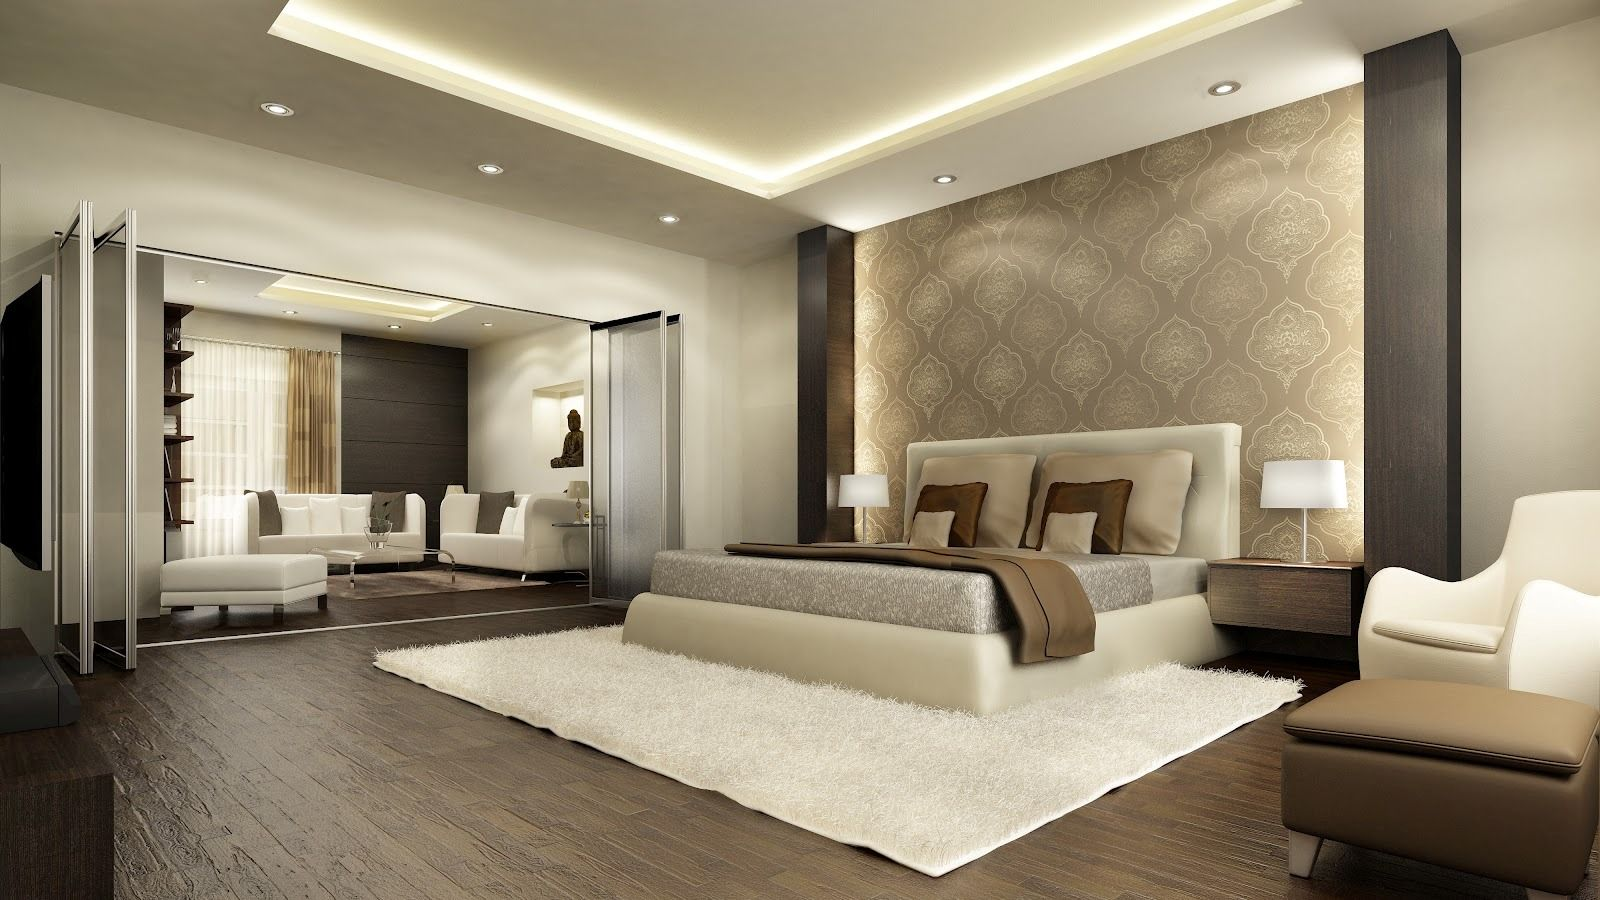 luxurious master bedroom fascinating luxury strangely bedroom interior design fur 12164